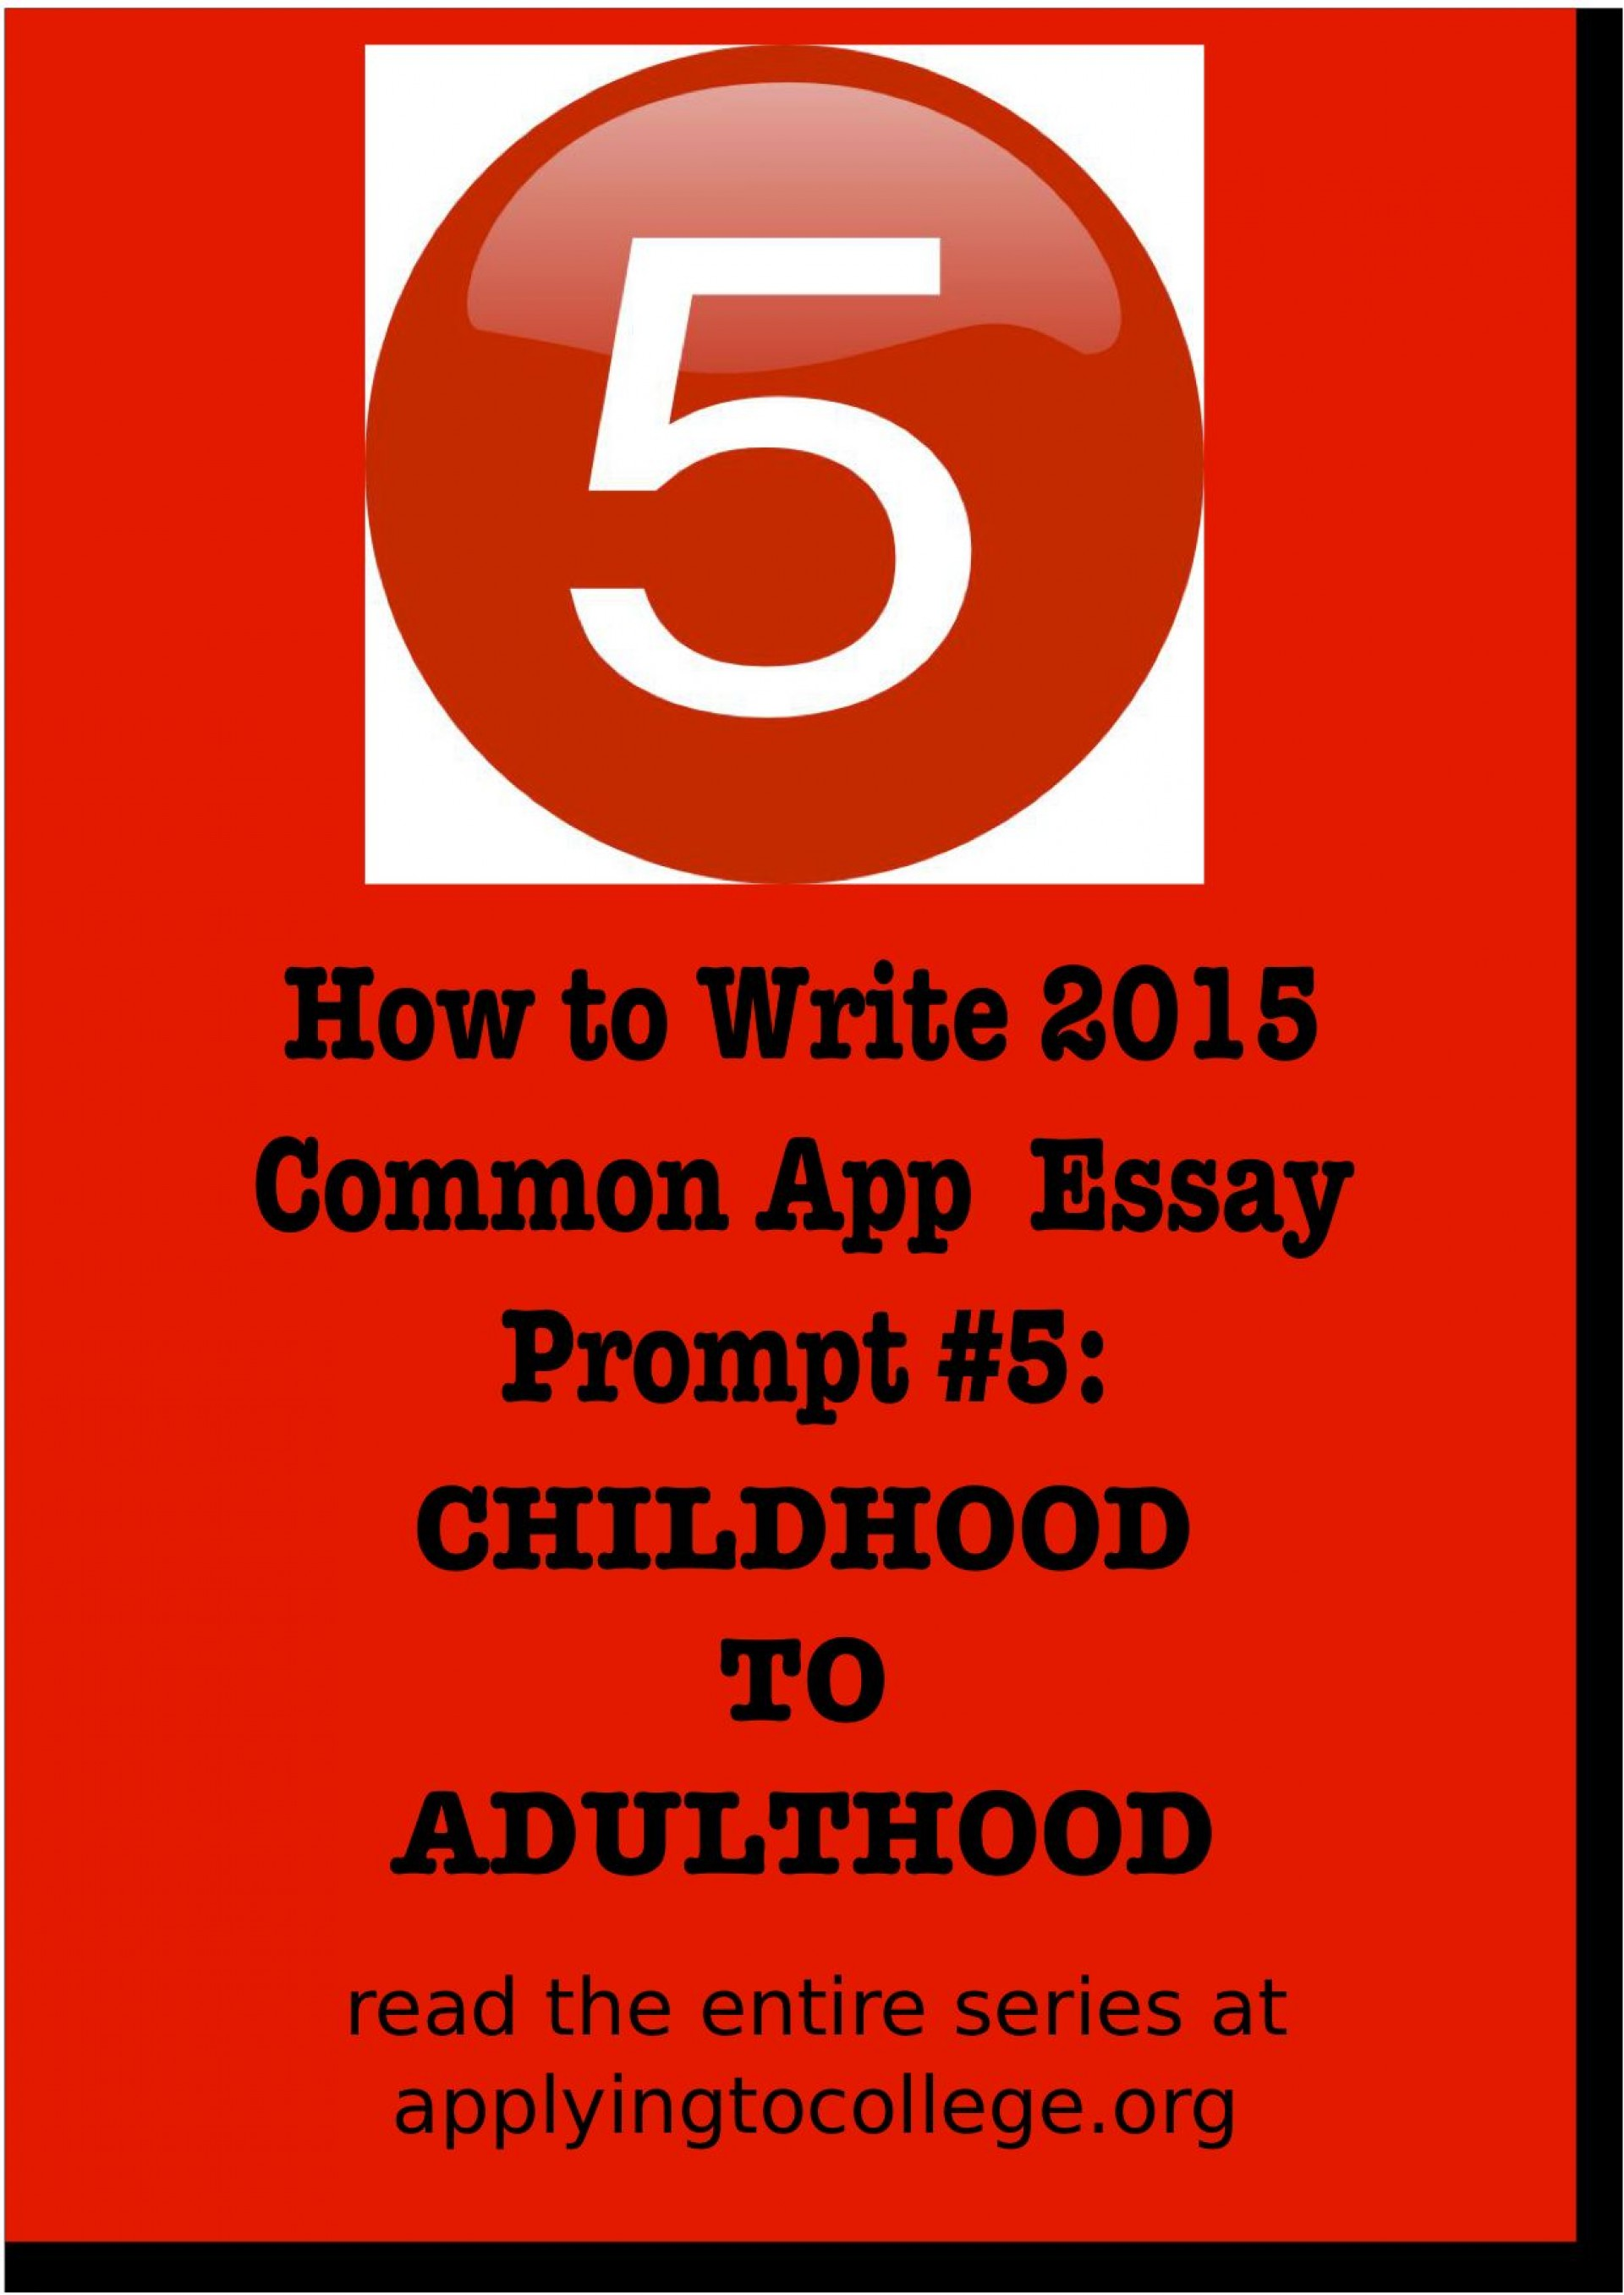 013 Essay Example Common App Unusual Prompt Examples 4 Prompts Word Limit 1920